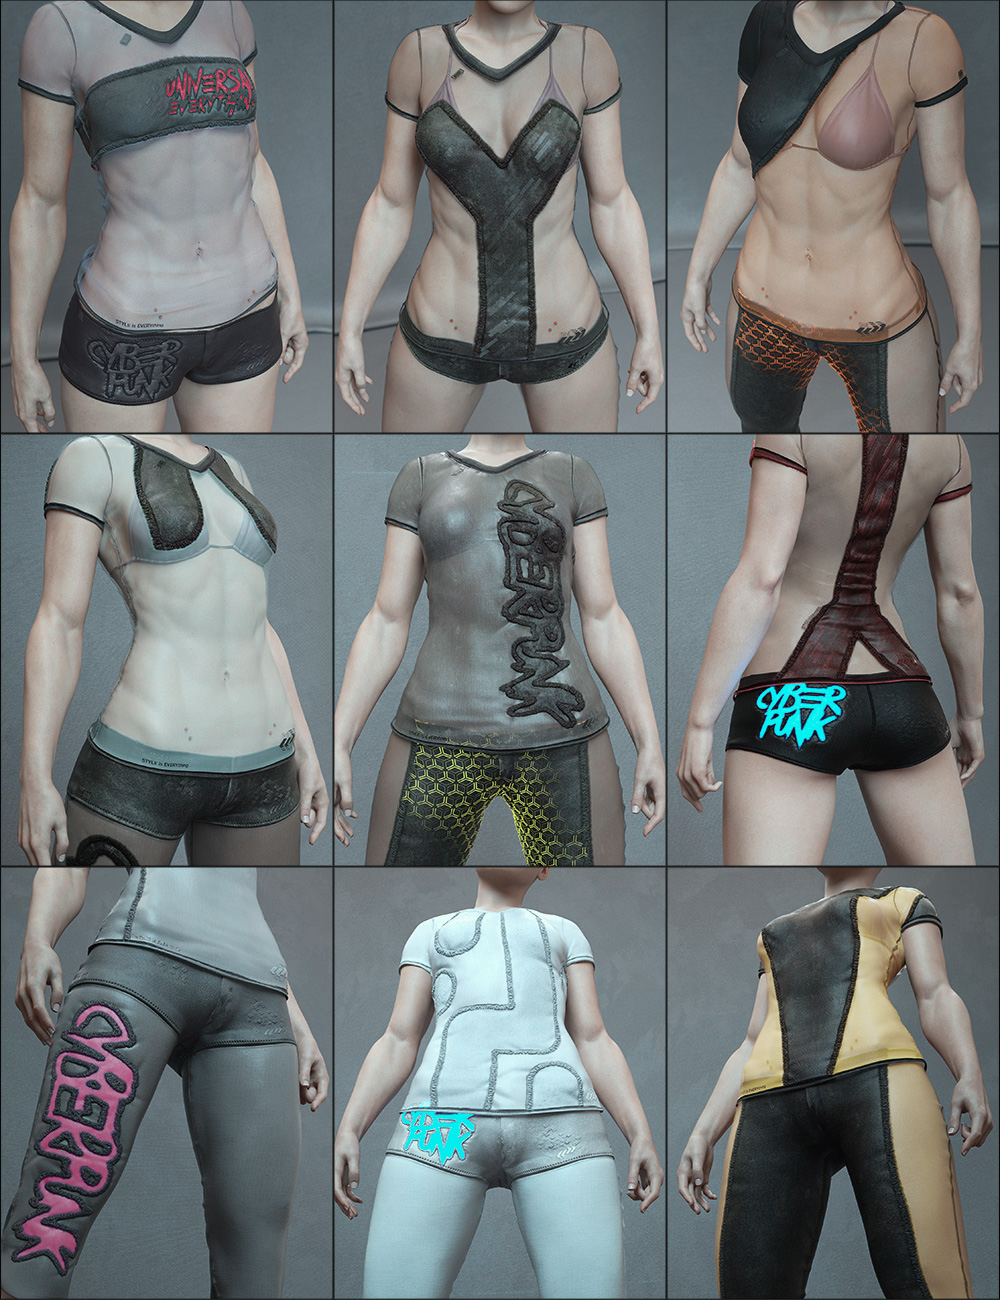 Cyberpunk Futuristic Styles for Everyday 2 by: Aeon Soul, 3D Models by Daz 3D